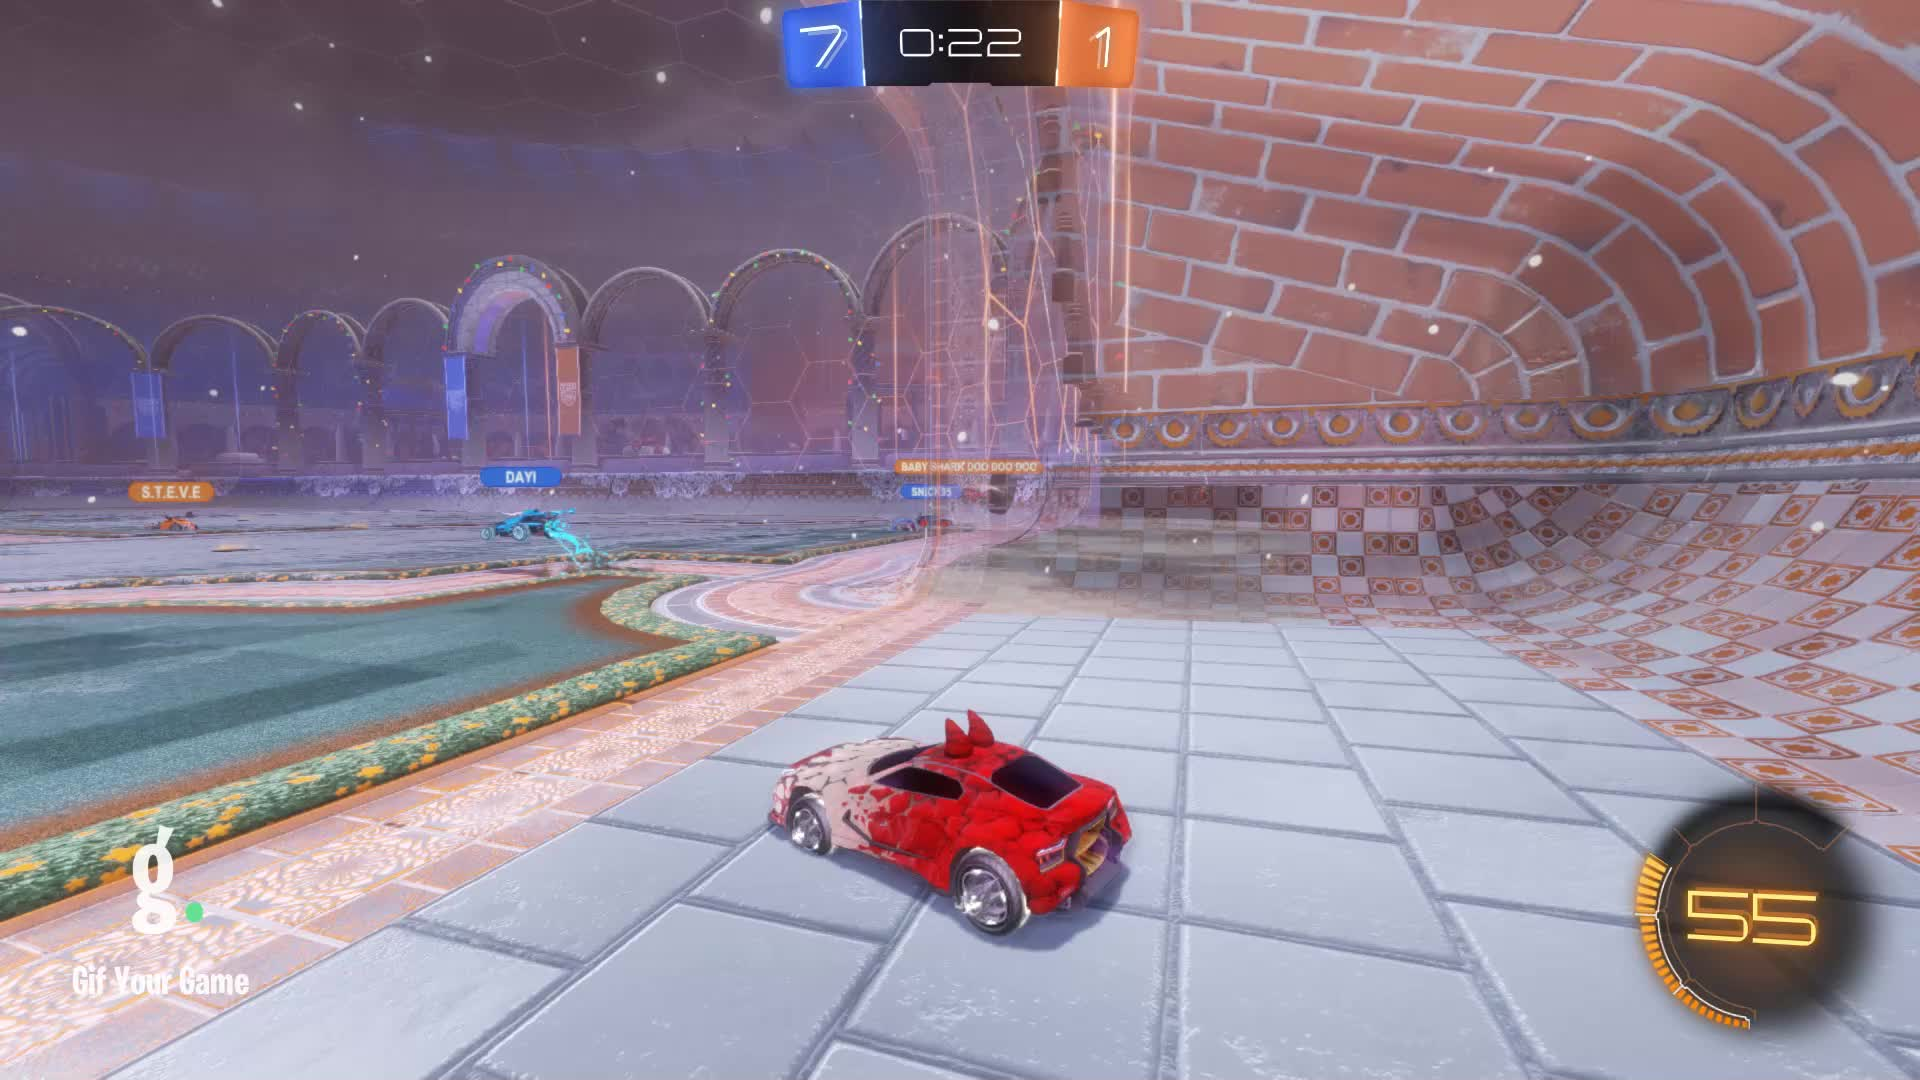 Gif Your Game, GifYourGame, Goal, Nox, Rocket League, RocketLeague, Goal 9: Baby Shark doo doo doo GIFs